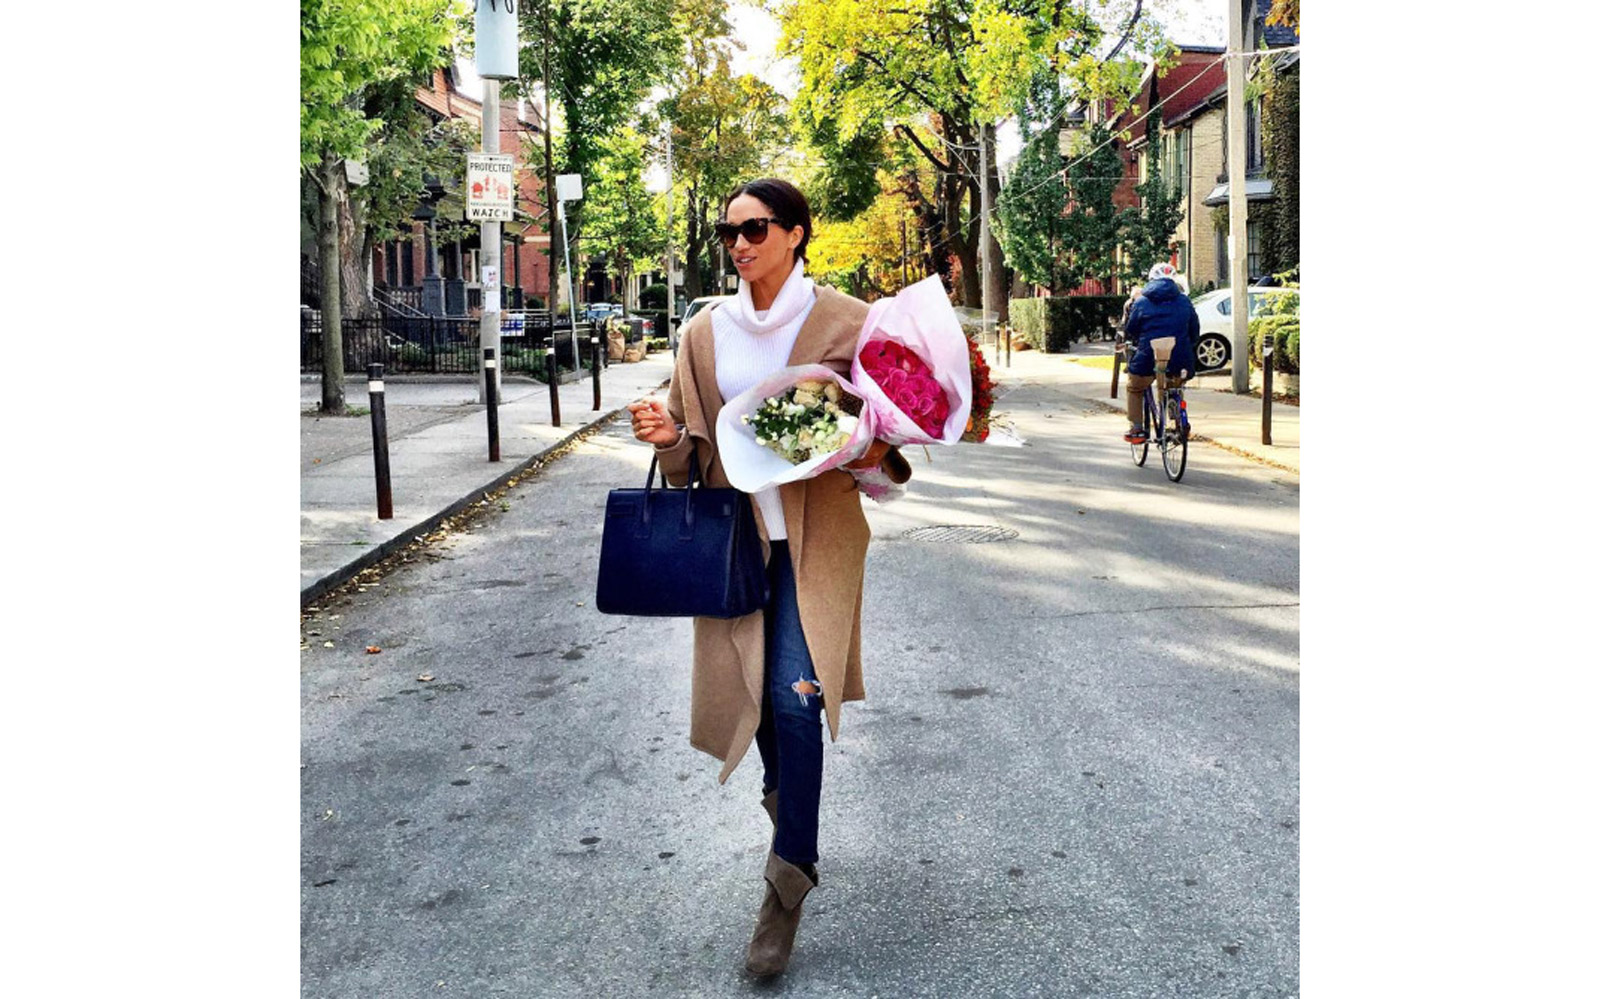 Meghan Markle carrying a bouquet of flowers